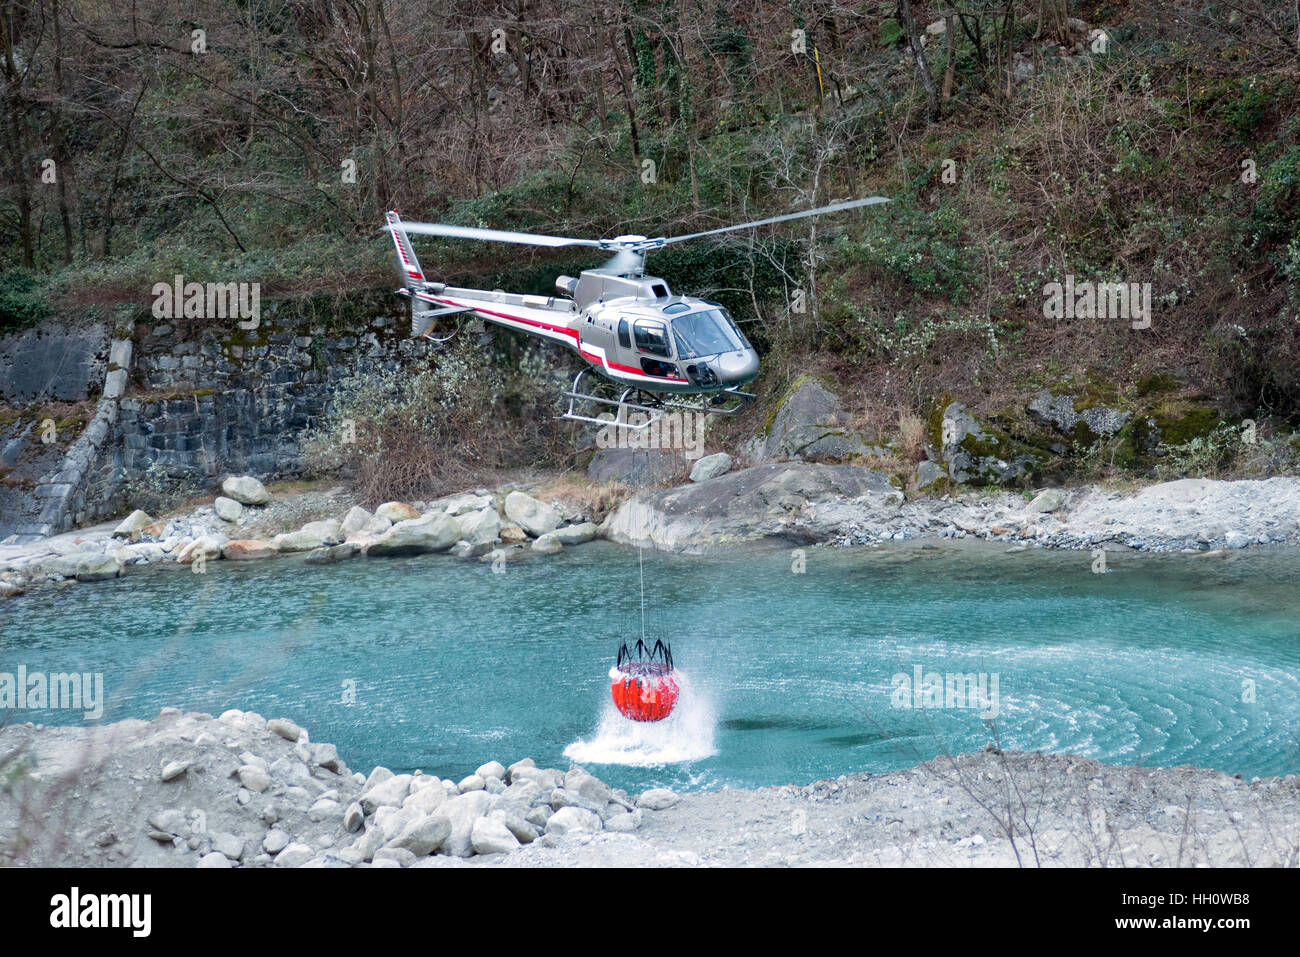 Fire fighting helicopter collecting water in a suspended bucket below the chopper from a mountain river to dowse - Stock Image